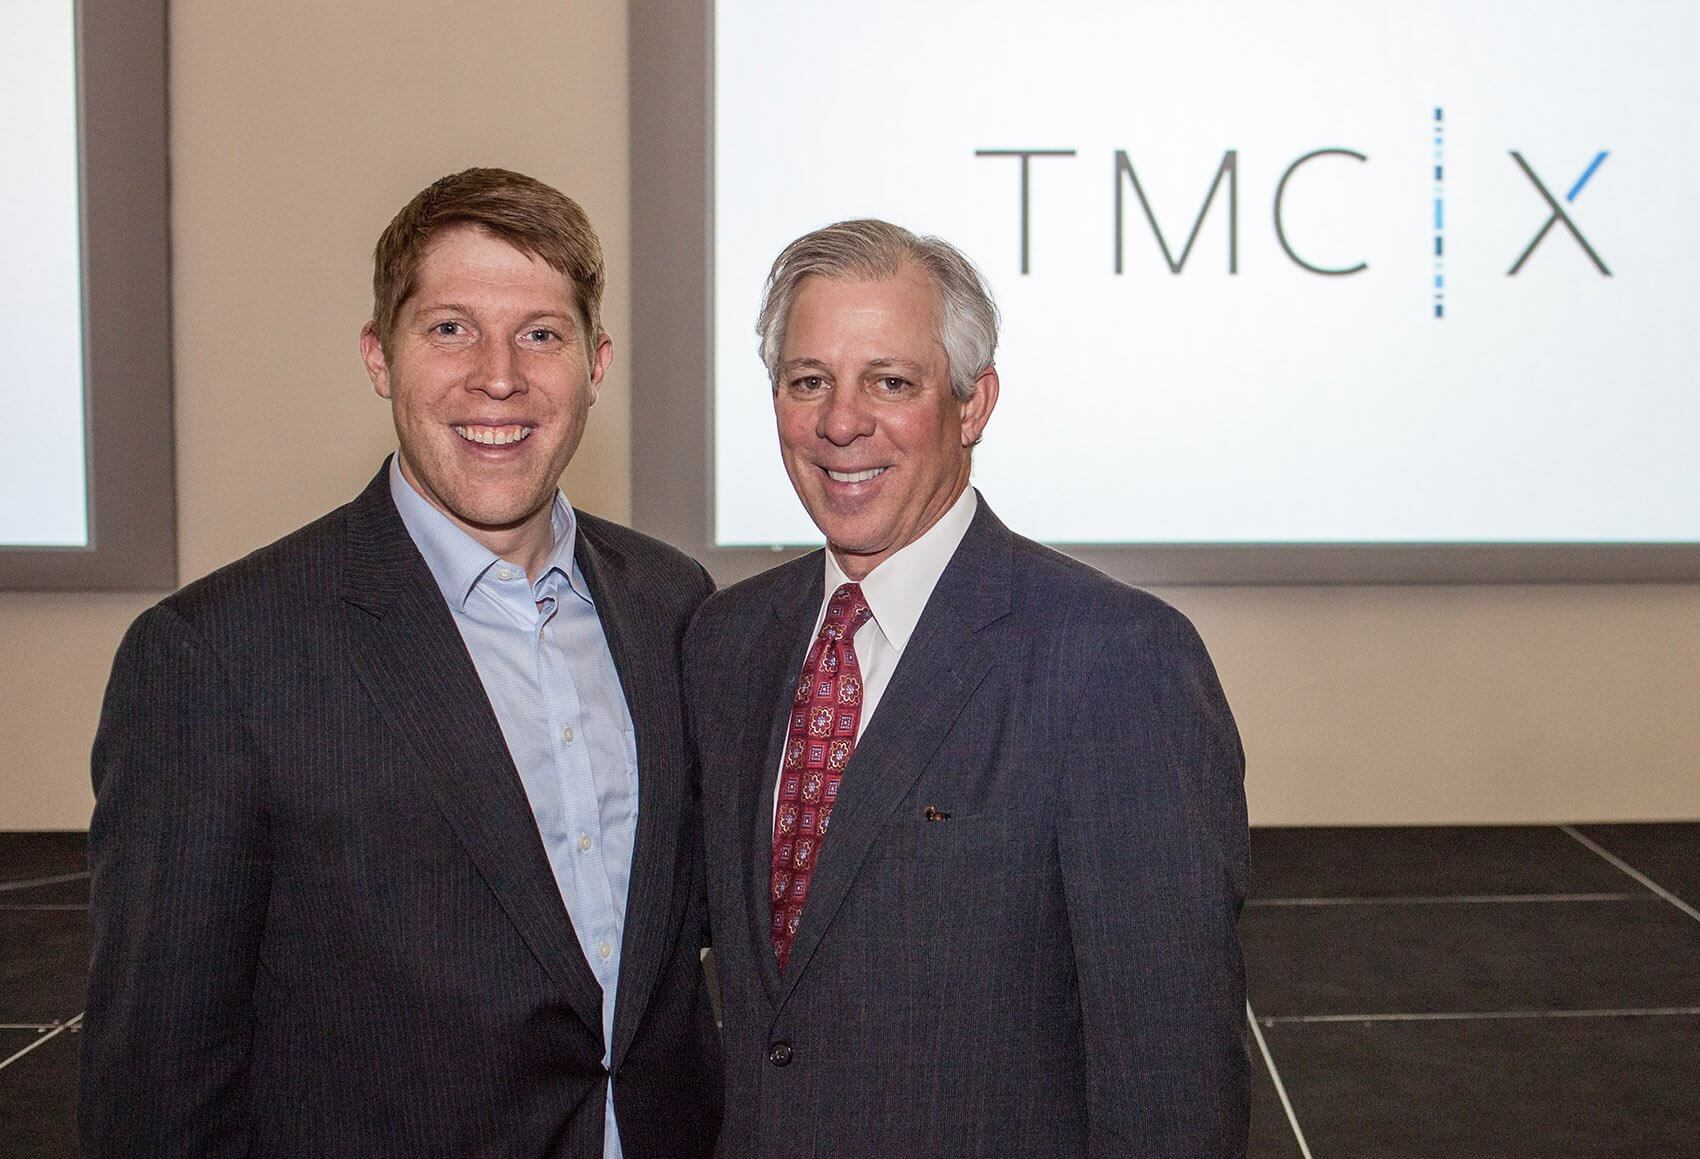 Robert C. Robbins, M.D., president and CEO of the Texas Medical Center, pictured right, and Ross Baird.